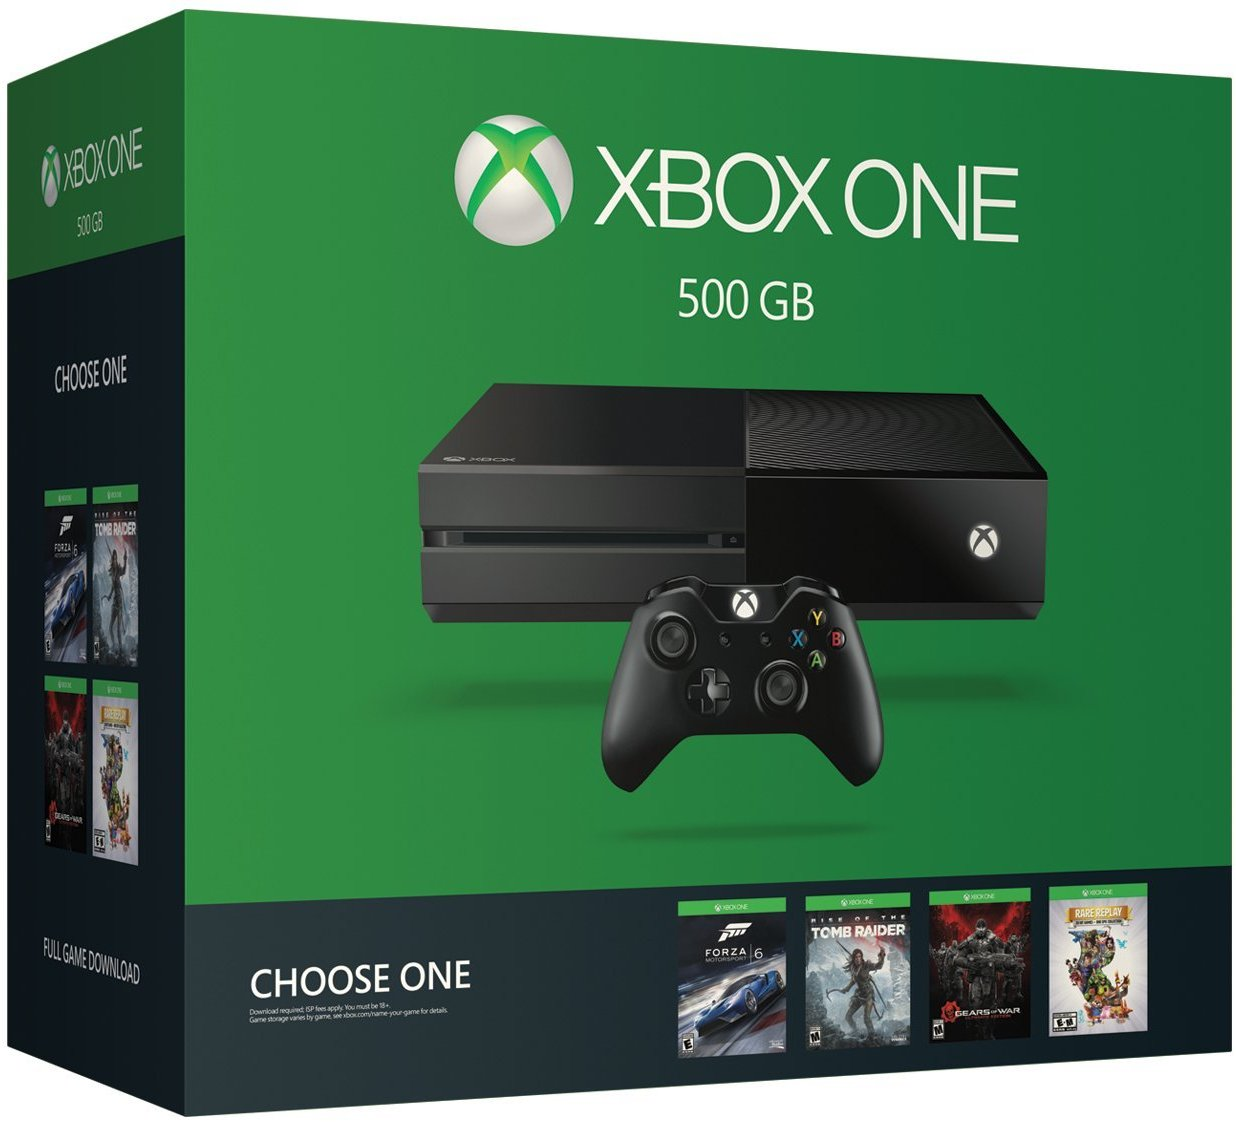 Xbox One 500GB Console - Name Your Game Bundle [Discontinued]